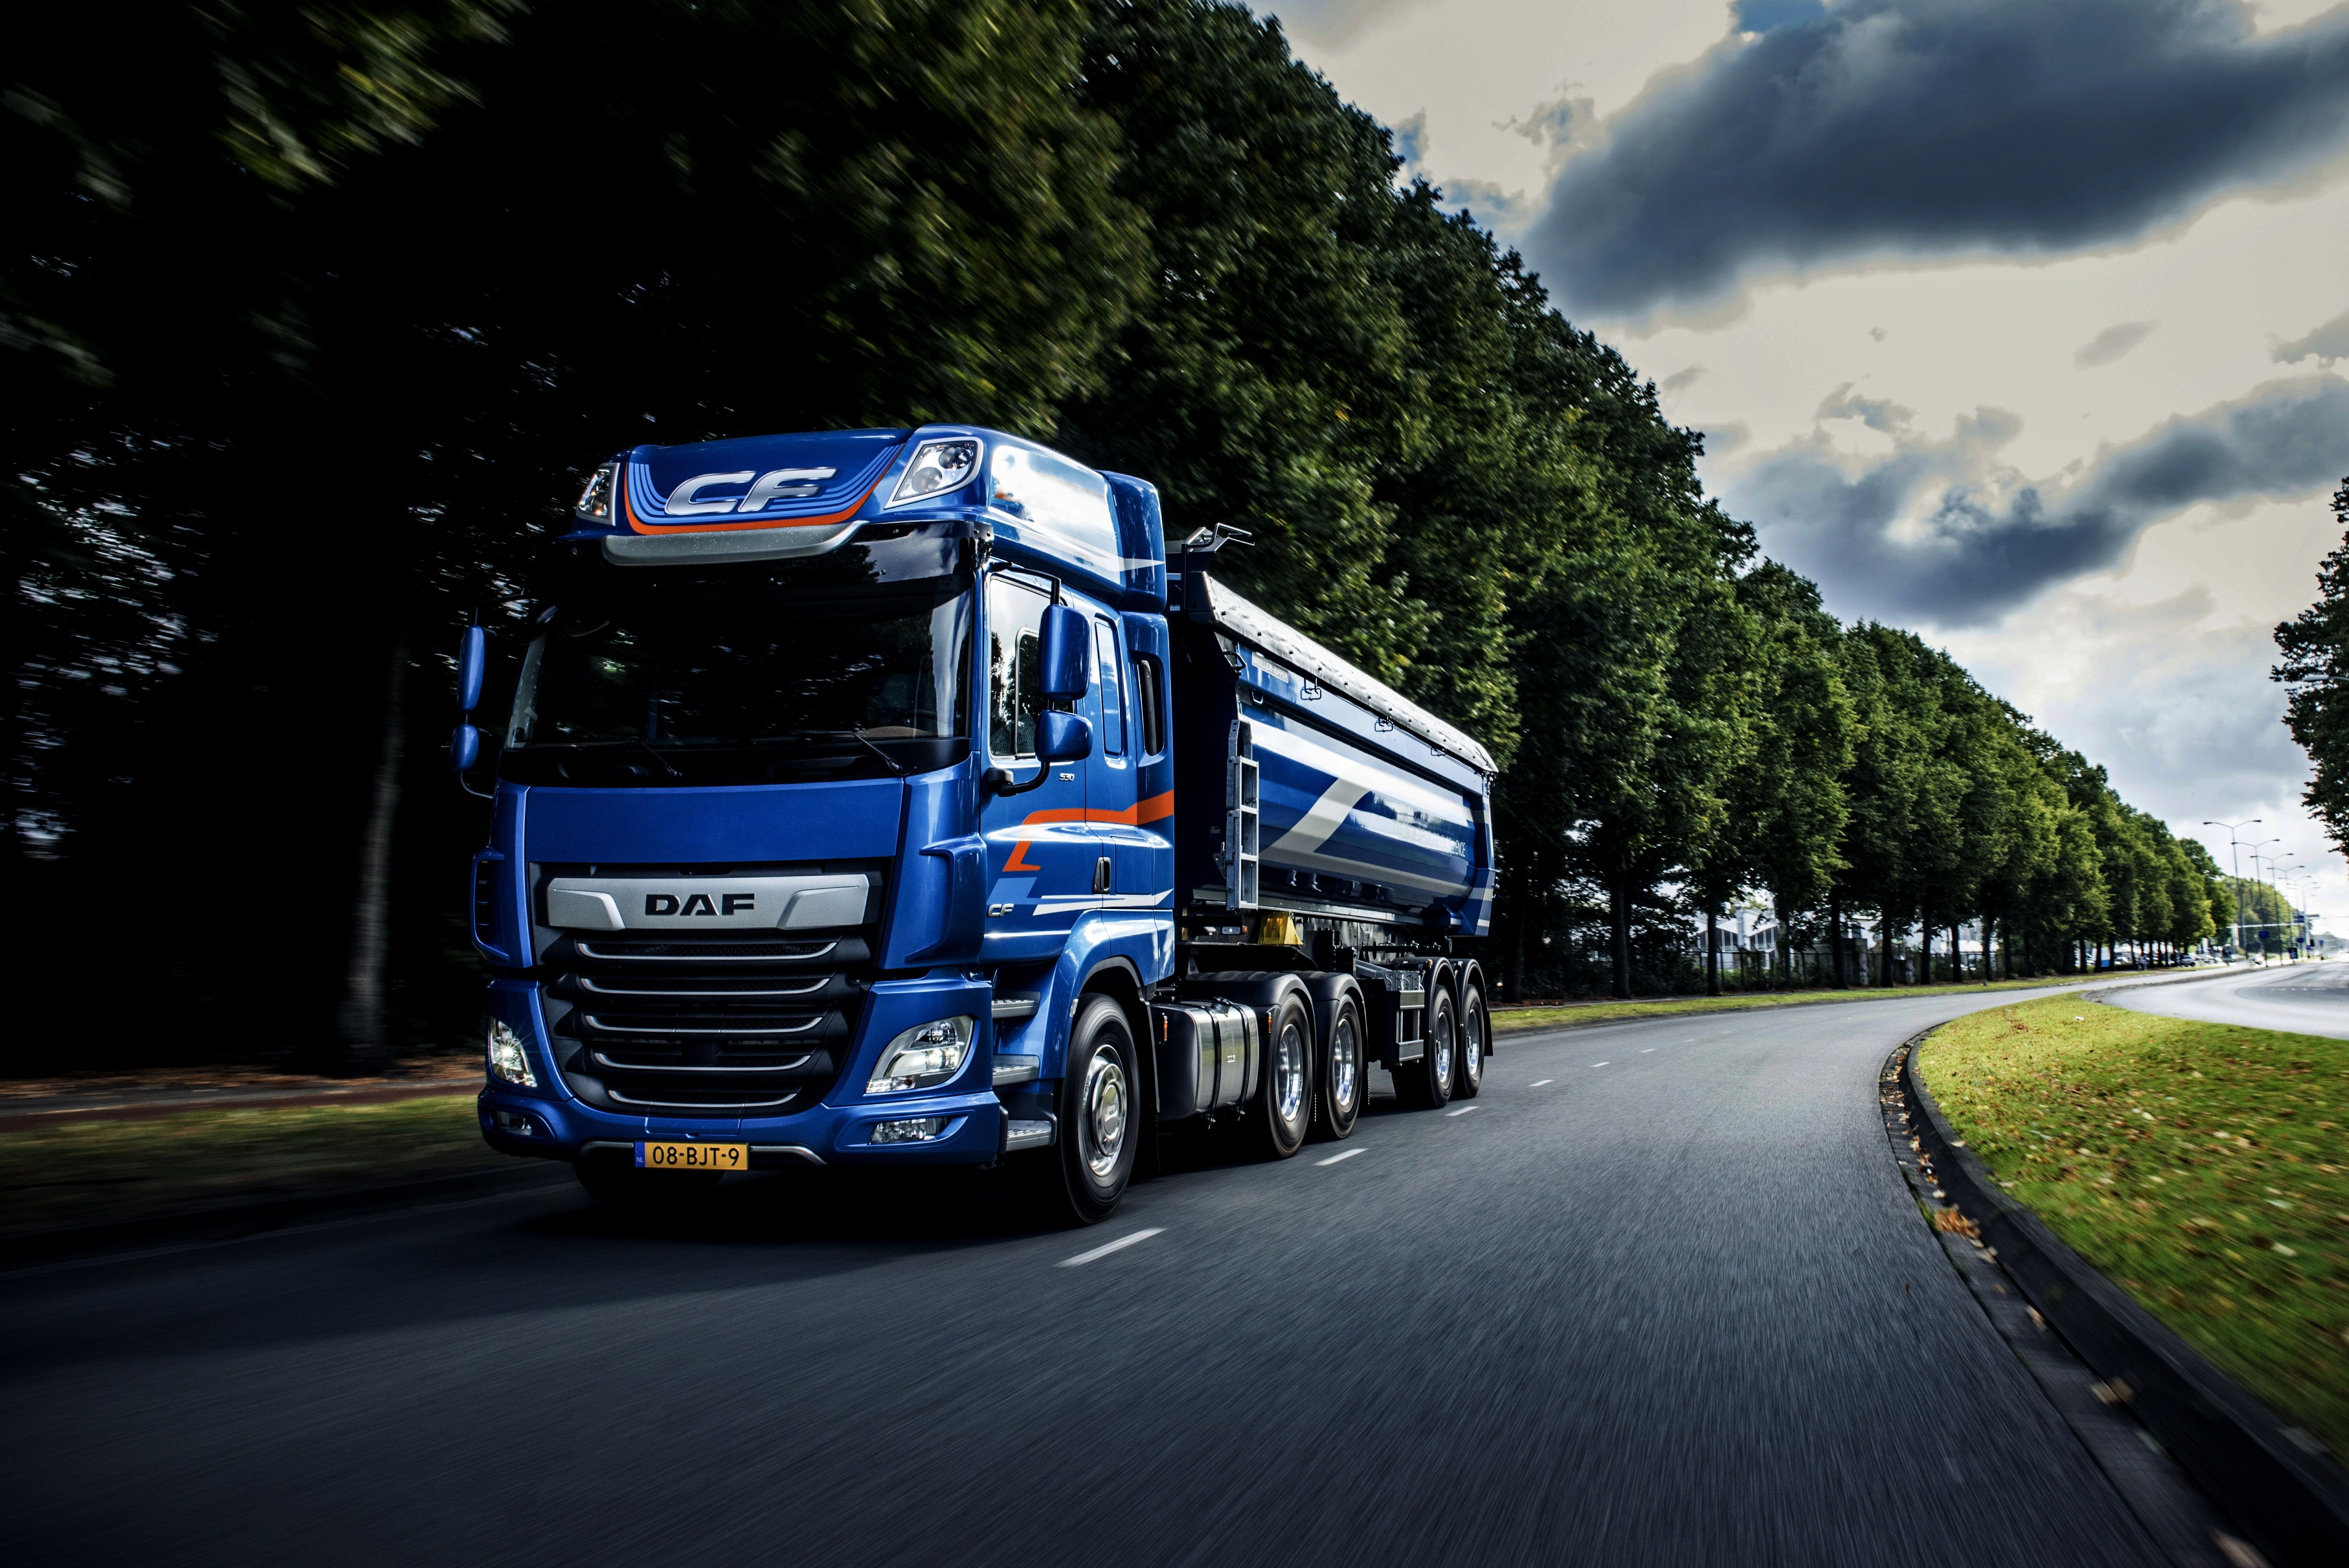 Vehicles Daf Road Truck Vehicle 4k Wallpaper Hdwallpaper Desktop Trucks Vehicles Hd Wallpaper 4k truck wallpapers high quality